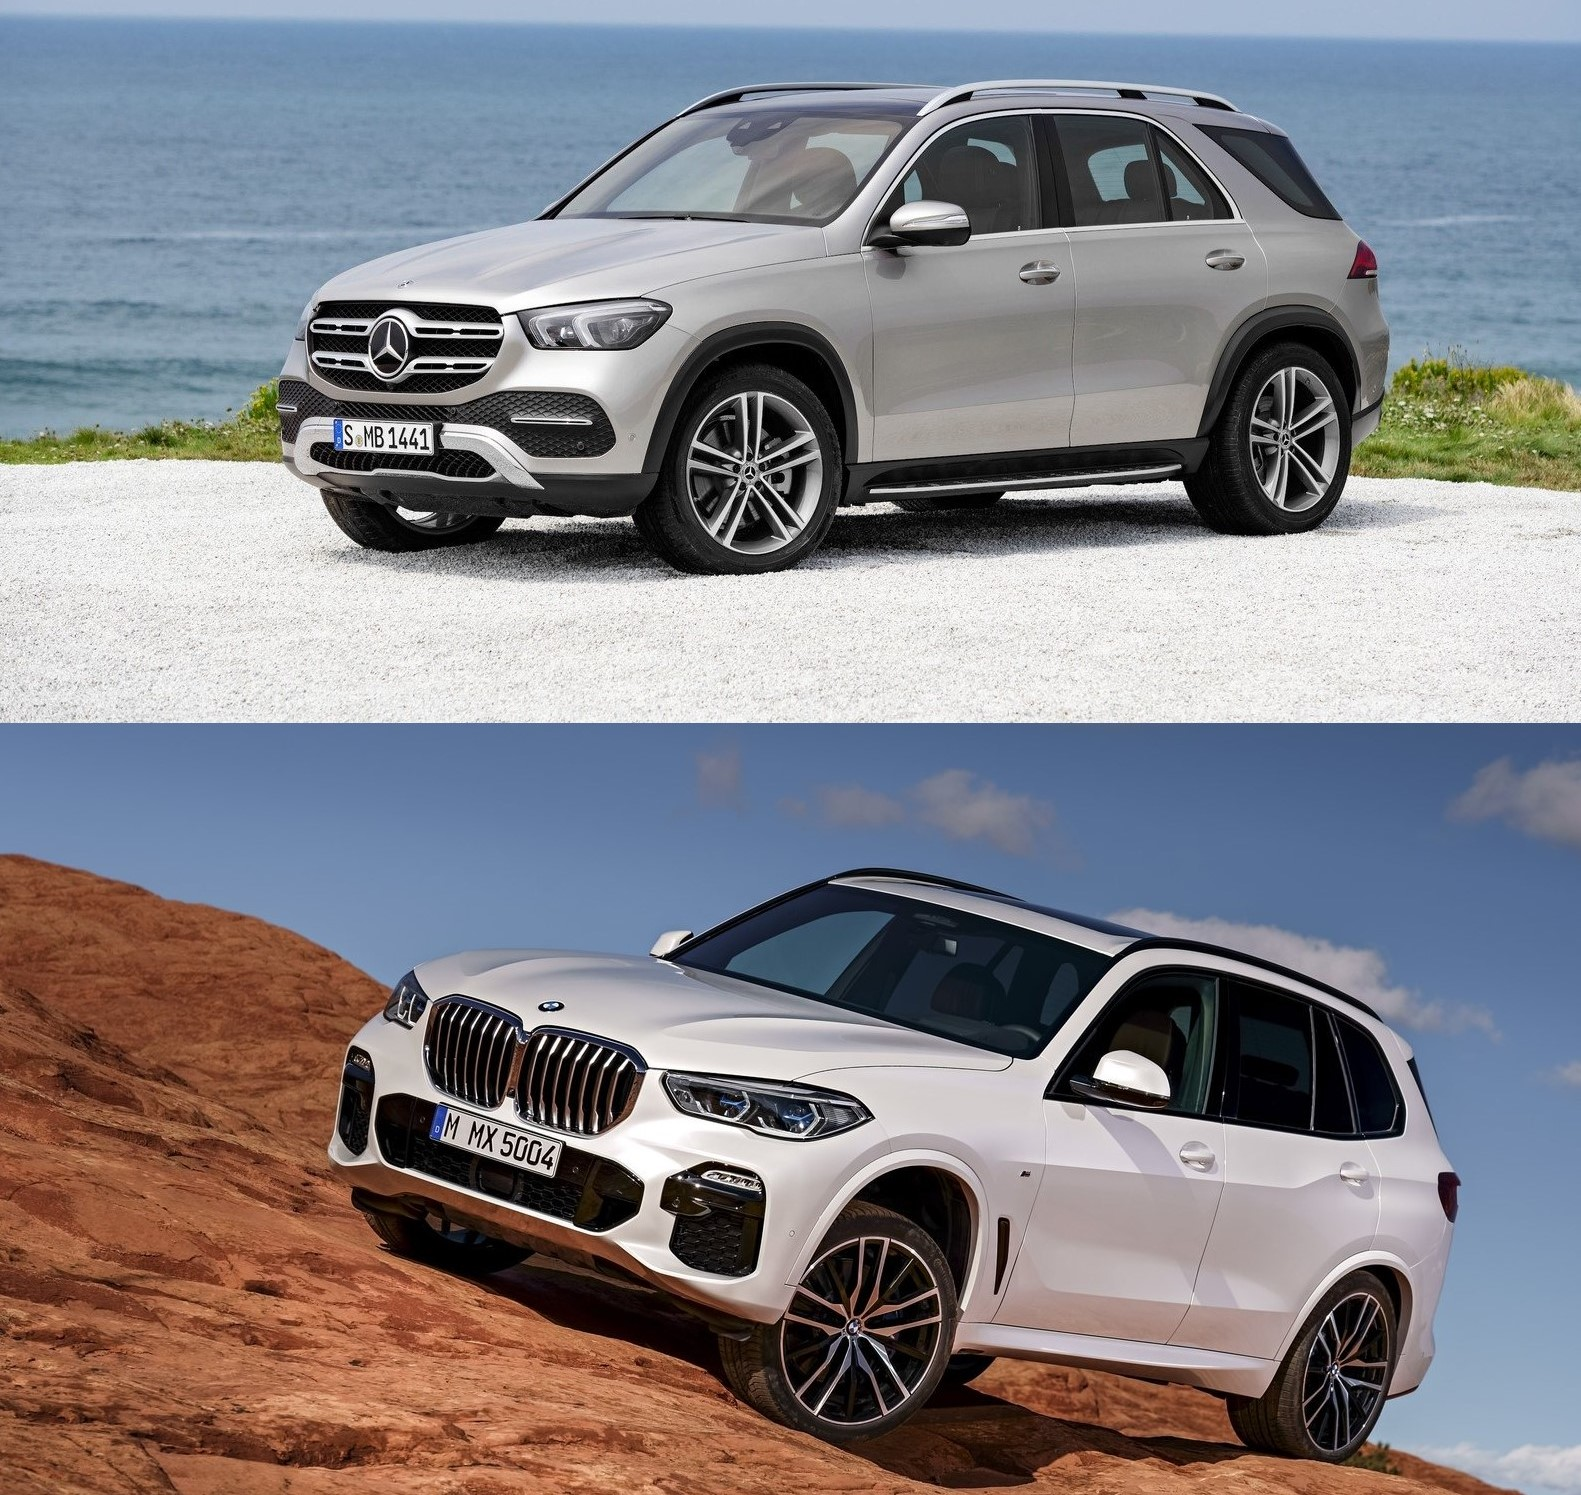 2020 Mercedes-Benz GLE Vs. 2019 BMW X5 | Top Speed